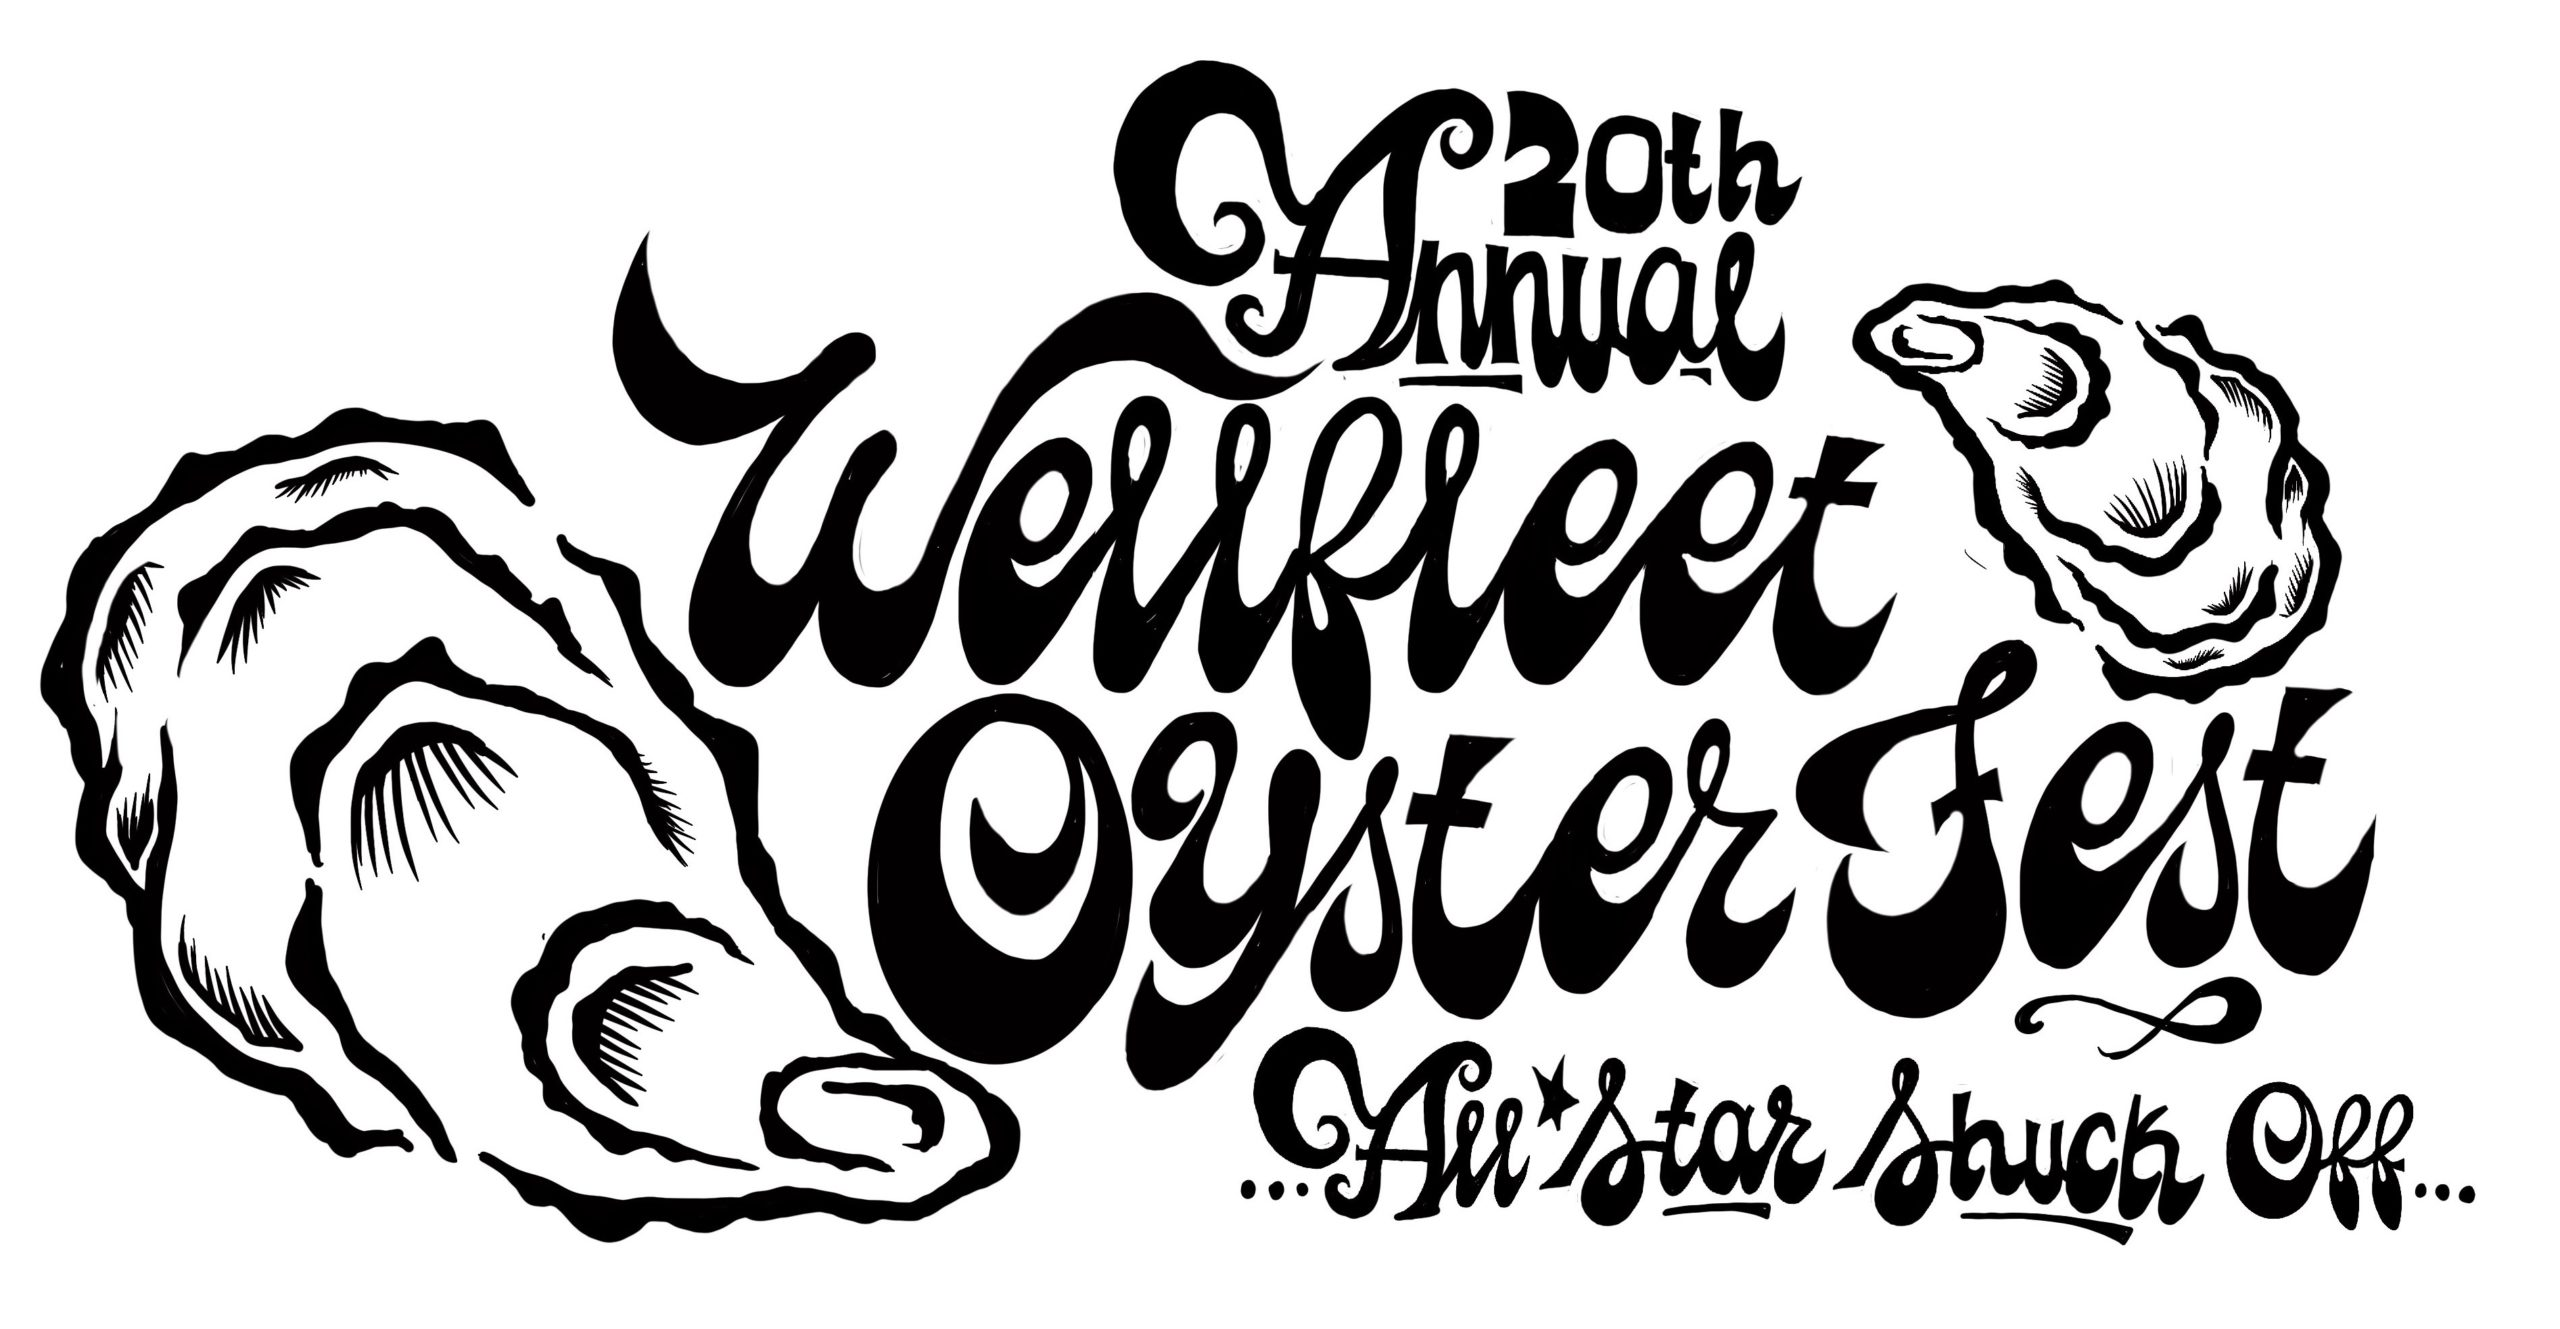 20th annual Wellfleet OysterFest® All Star Shuck Off